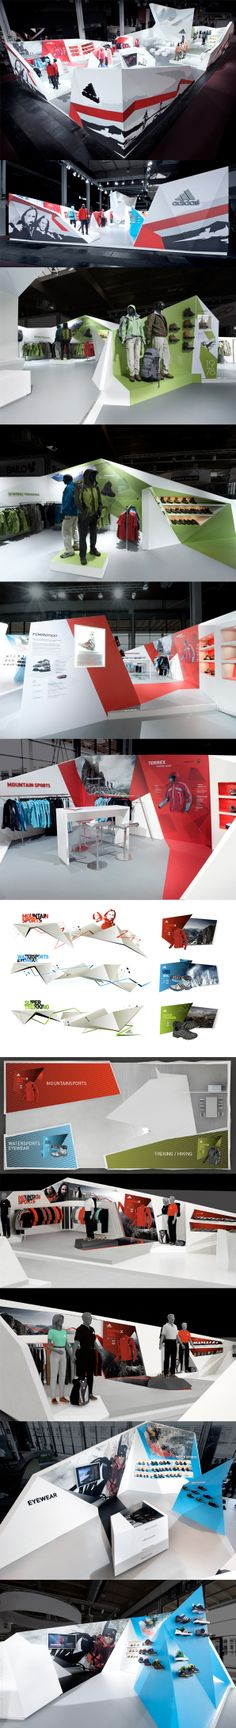 Adidas Outdoor Exhibition Stand 2009 | The Adidas Outdoor exhibition stand rises like mountains dynamically into the space. A winding band divides the different product groups, and 2D graphics turn into 3D bodies.